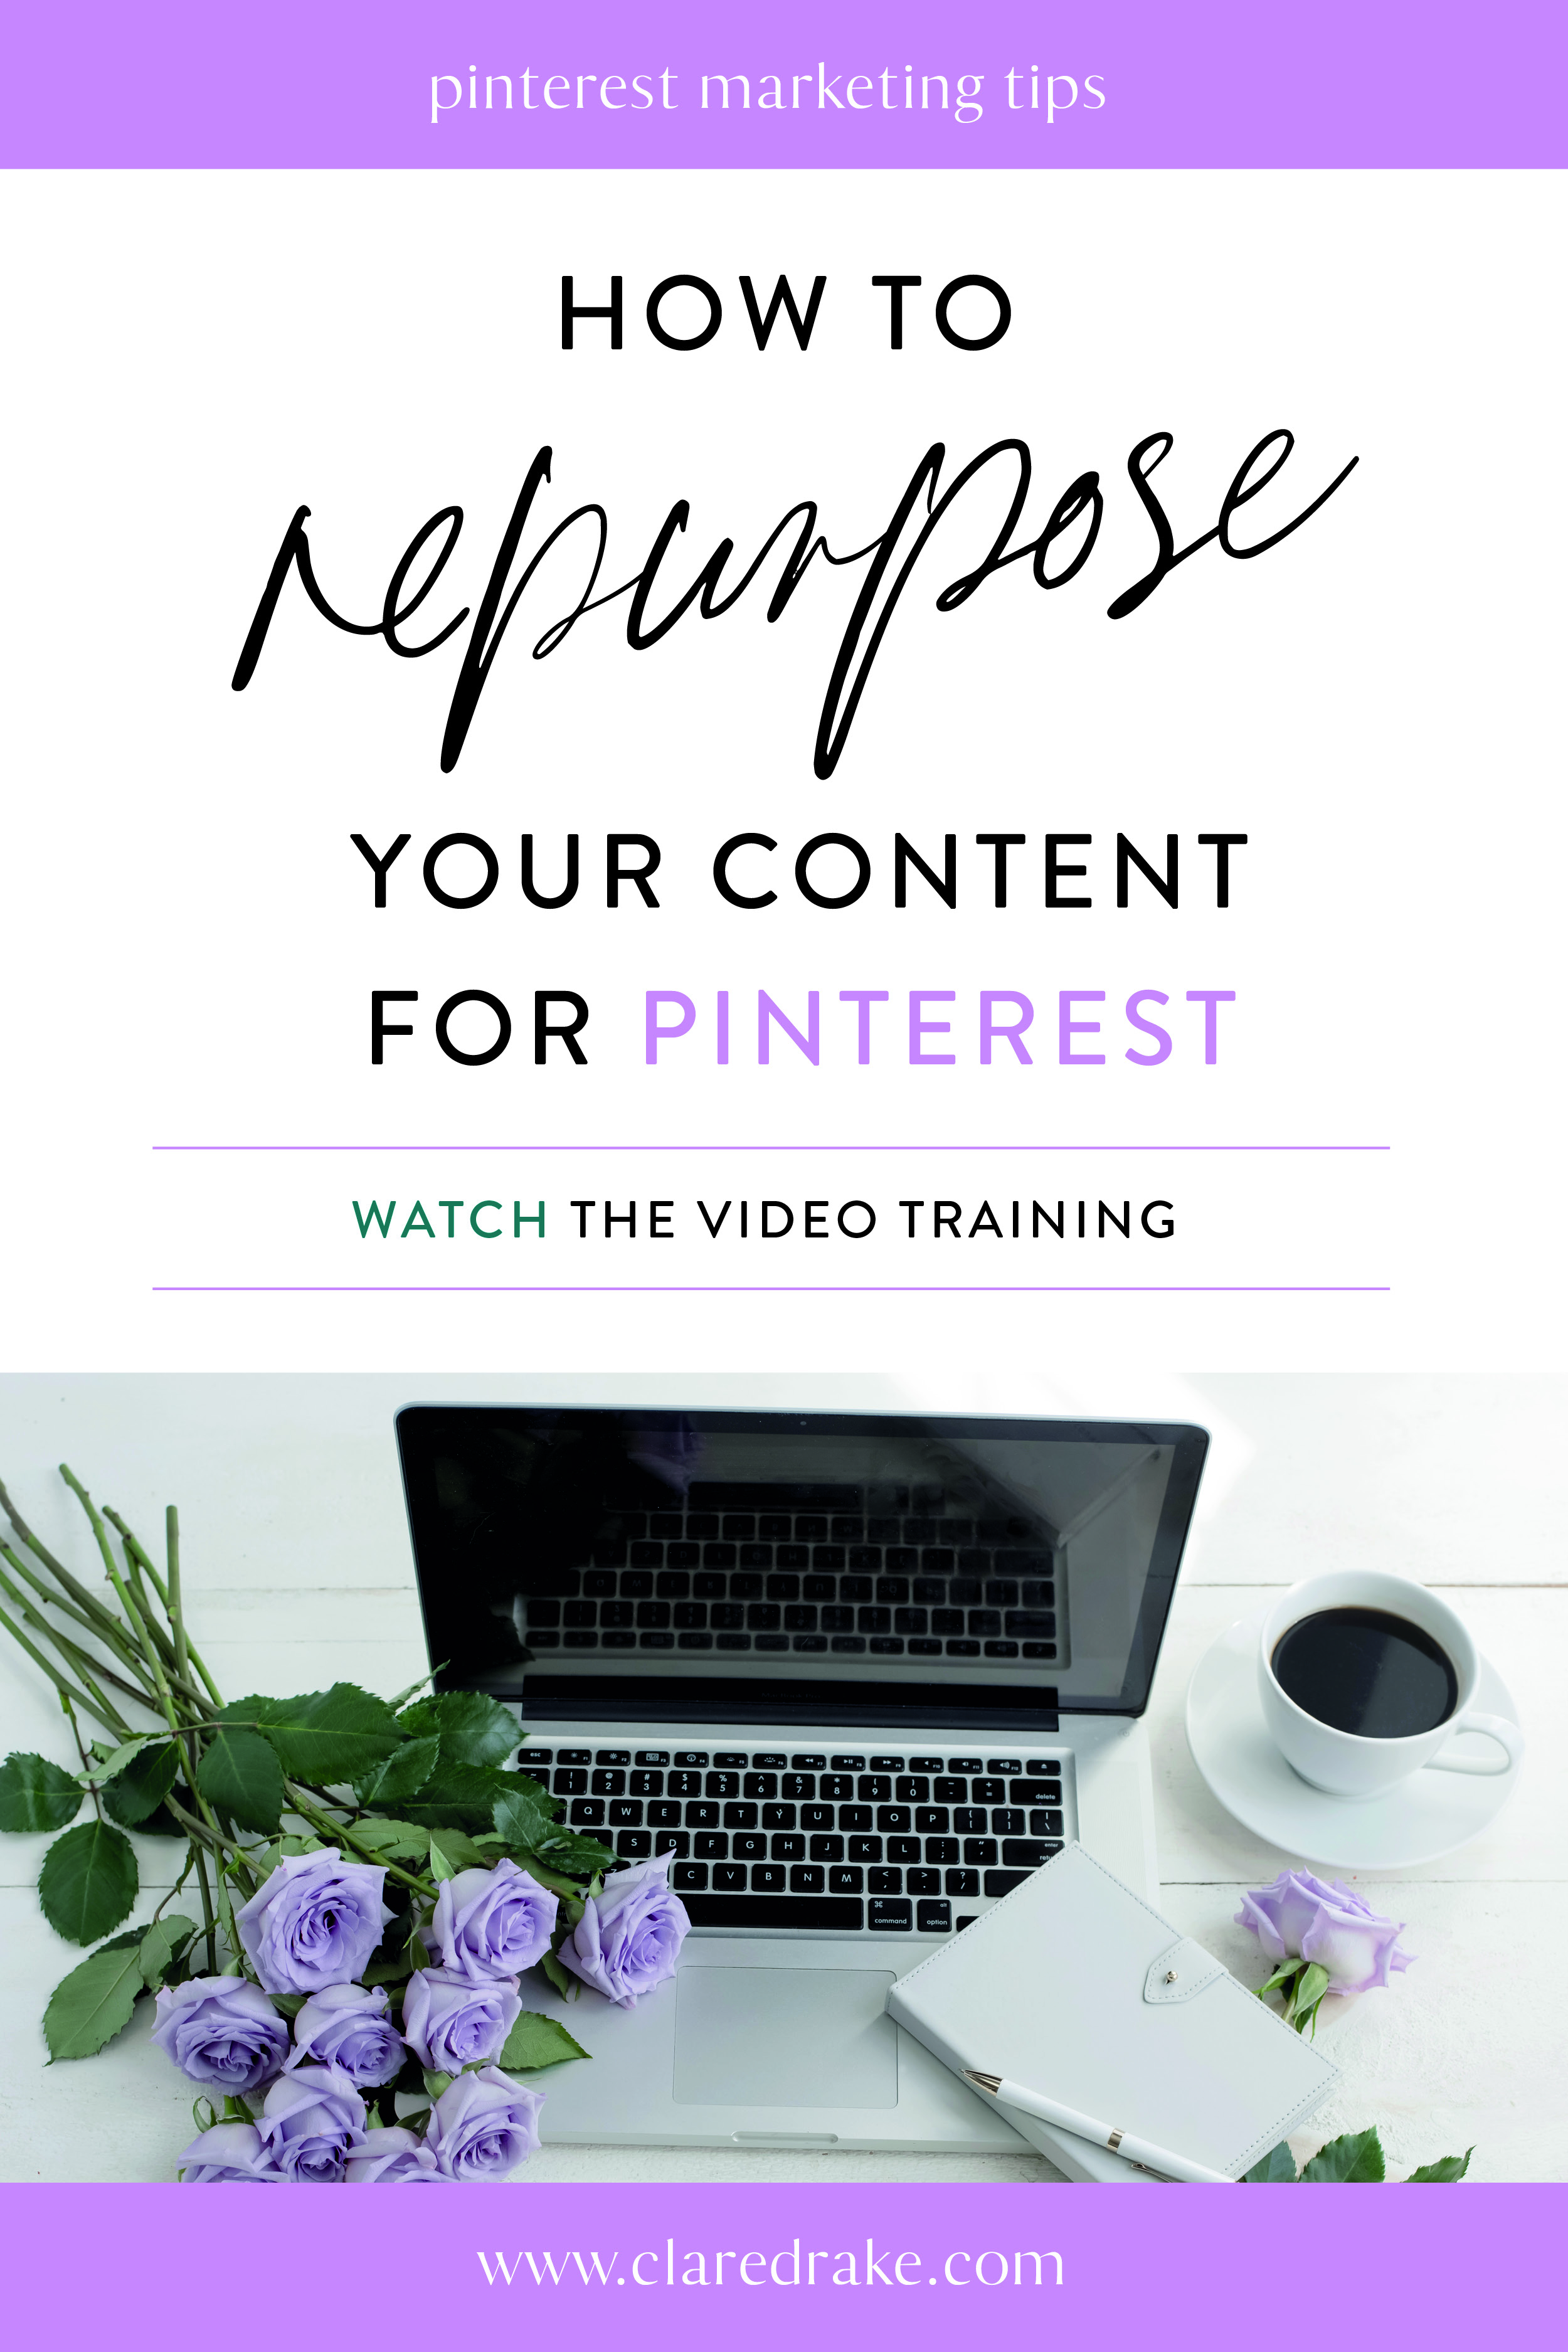 1. how to repurpose your content for pinterest.jpg